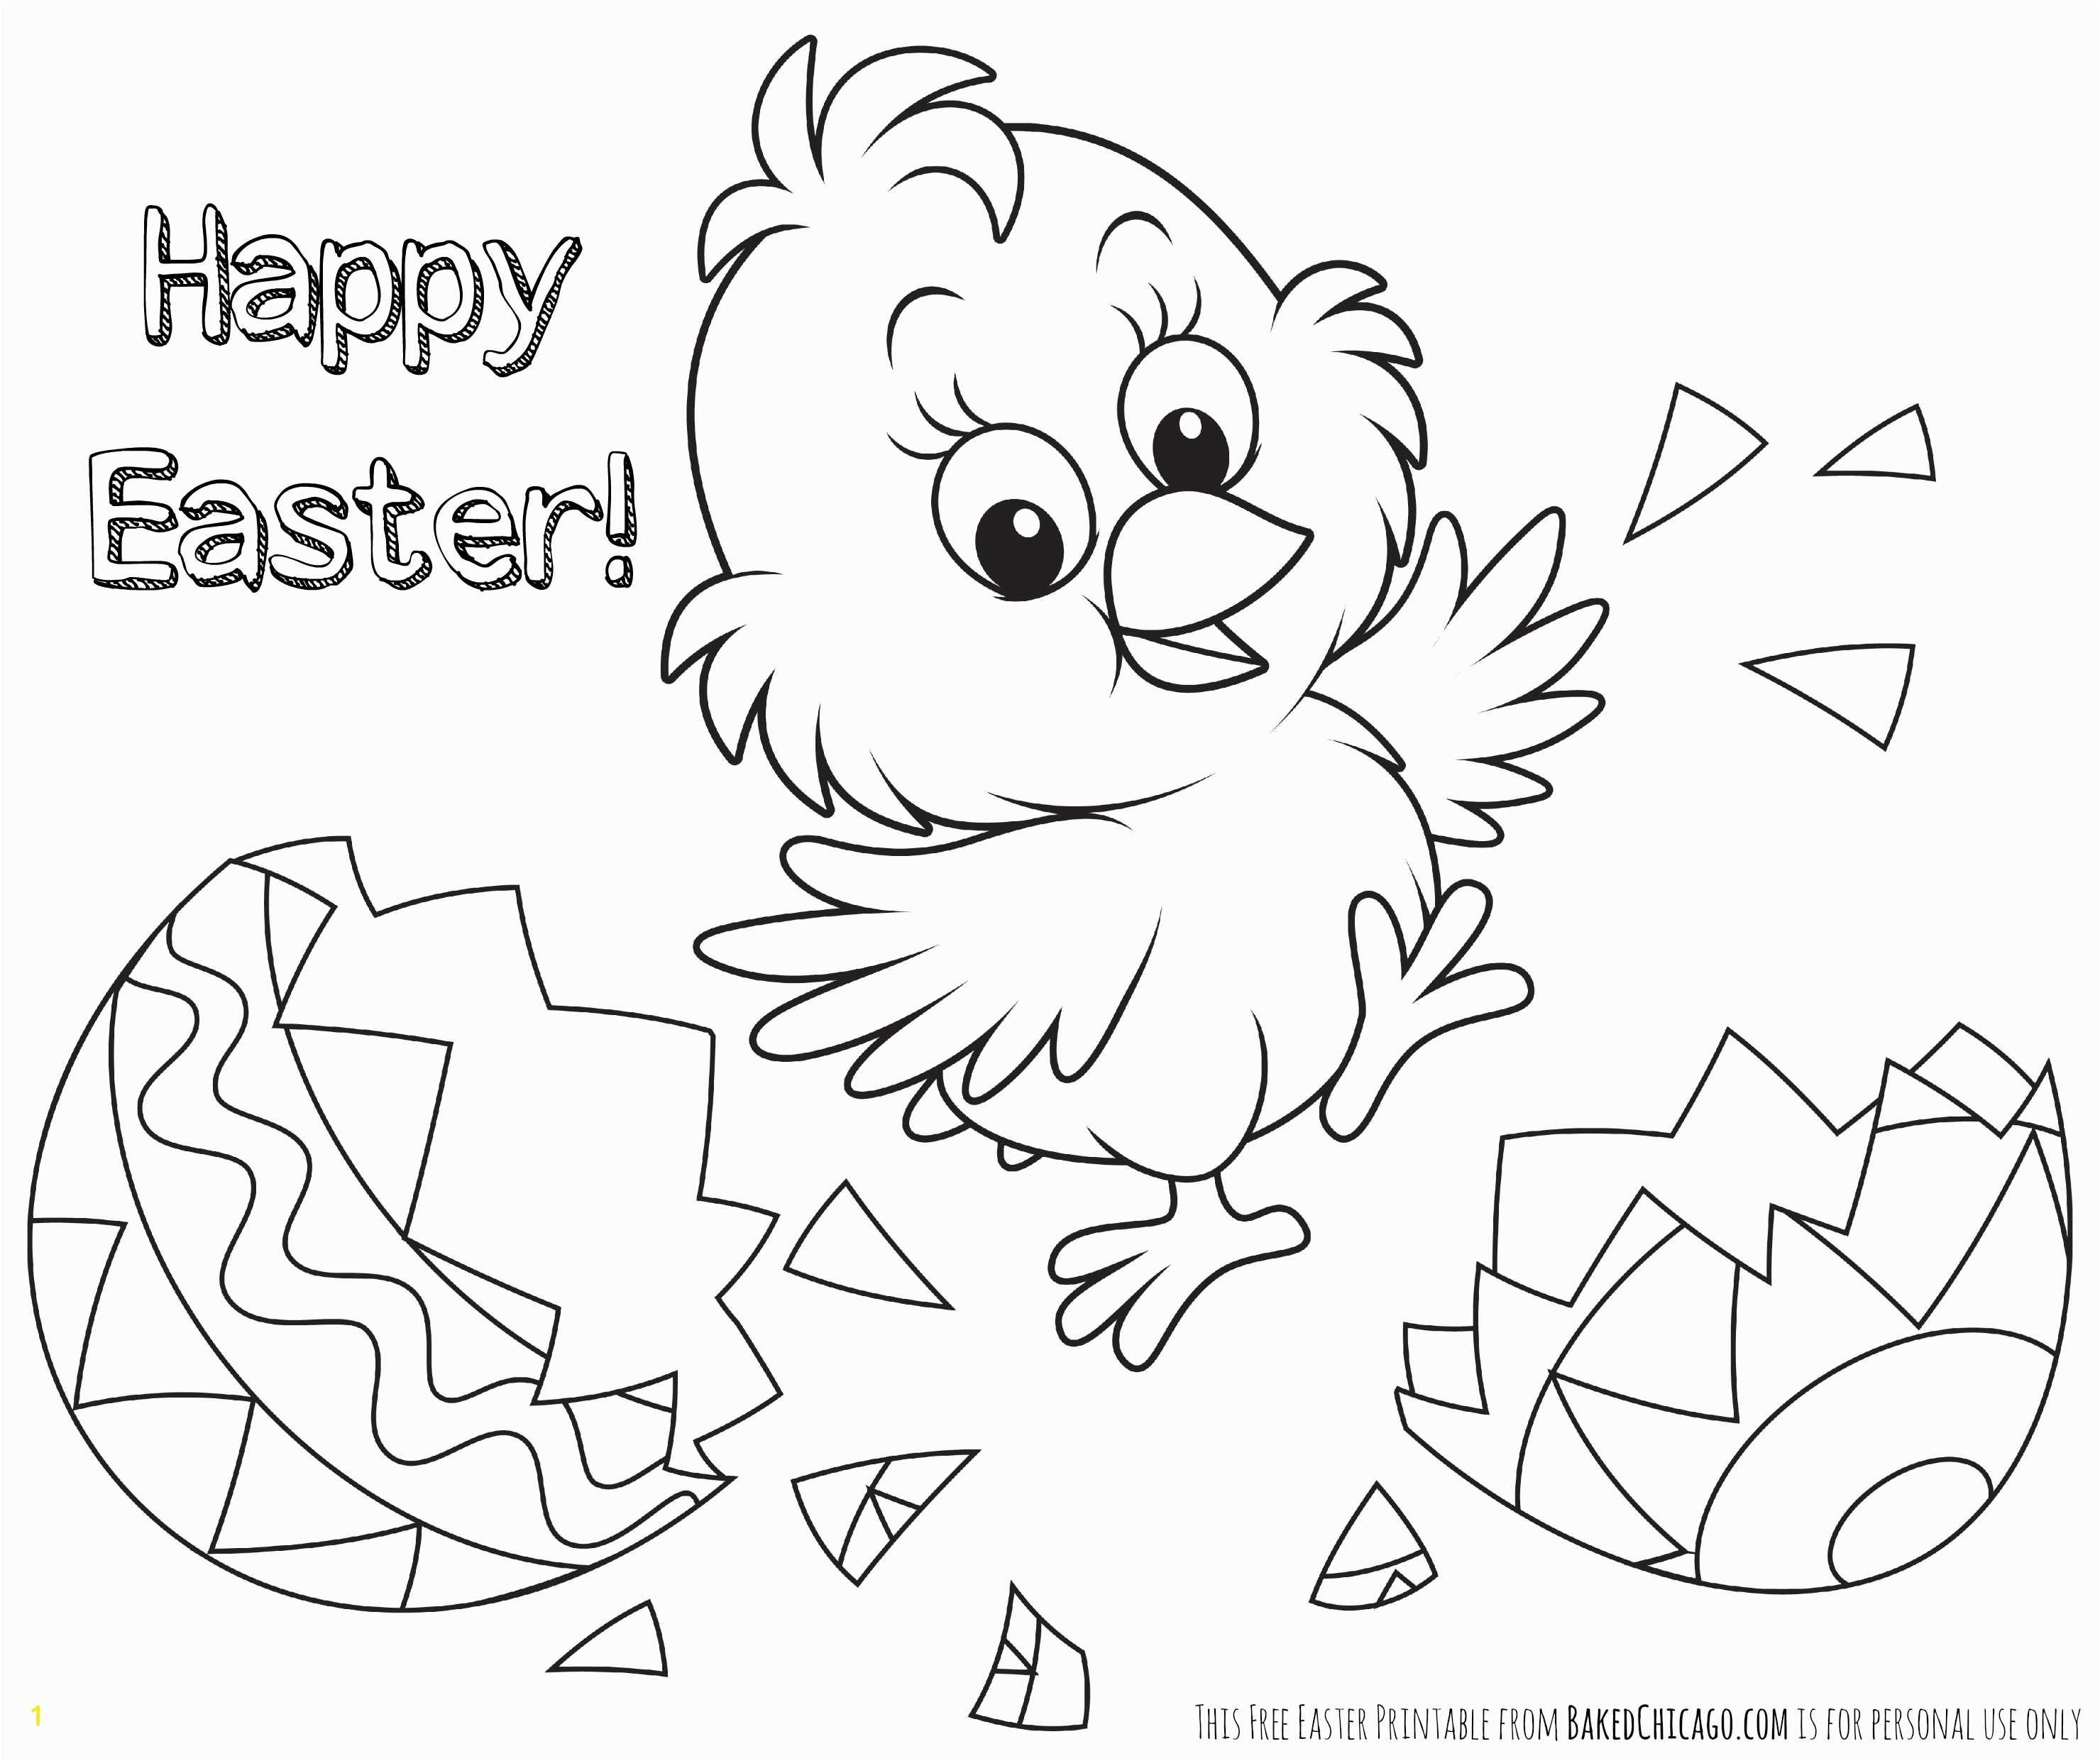 Easter Coloring Pages To Print Coloring Page Gallery Coloring Easter Pages To Print At Easter Color Pages